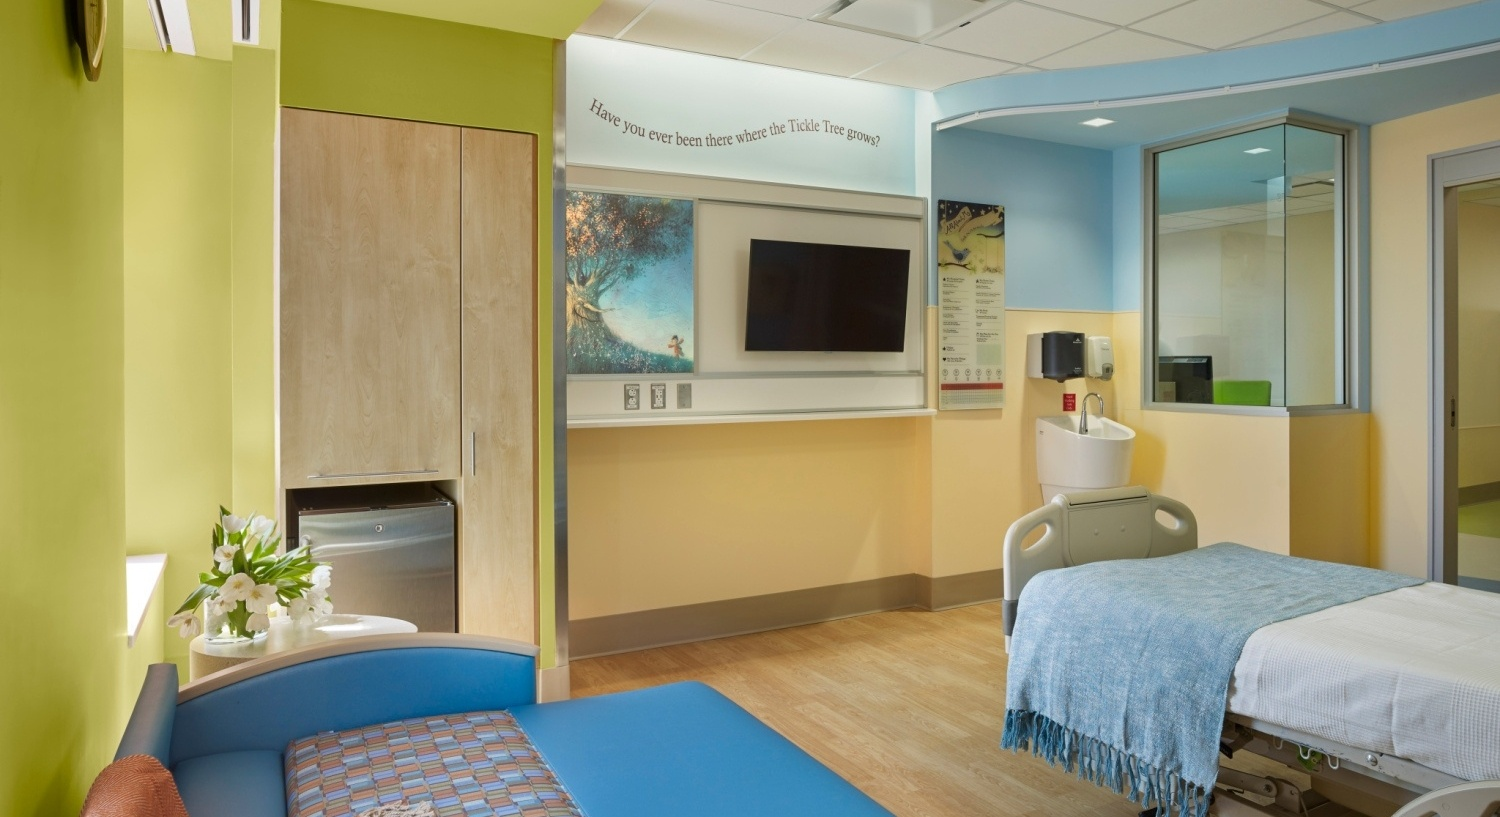 Pediatric Inpatient Units Of The Future Must Not Only Respond To Known Documented Evidence Based Design Attributes But Planning Considerations And